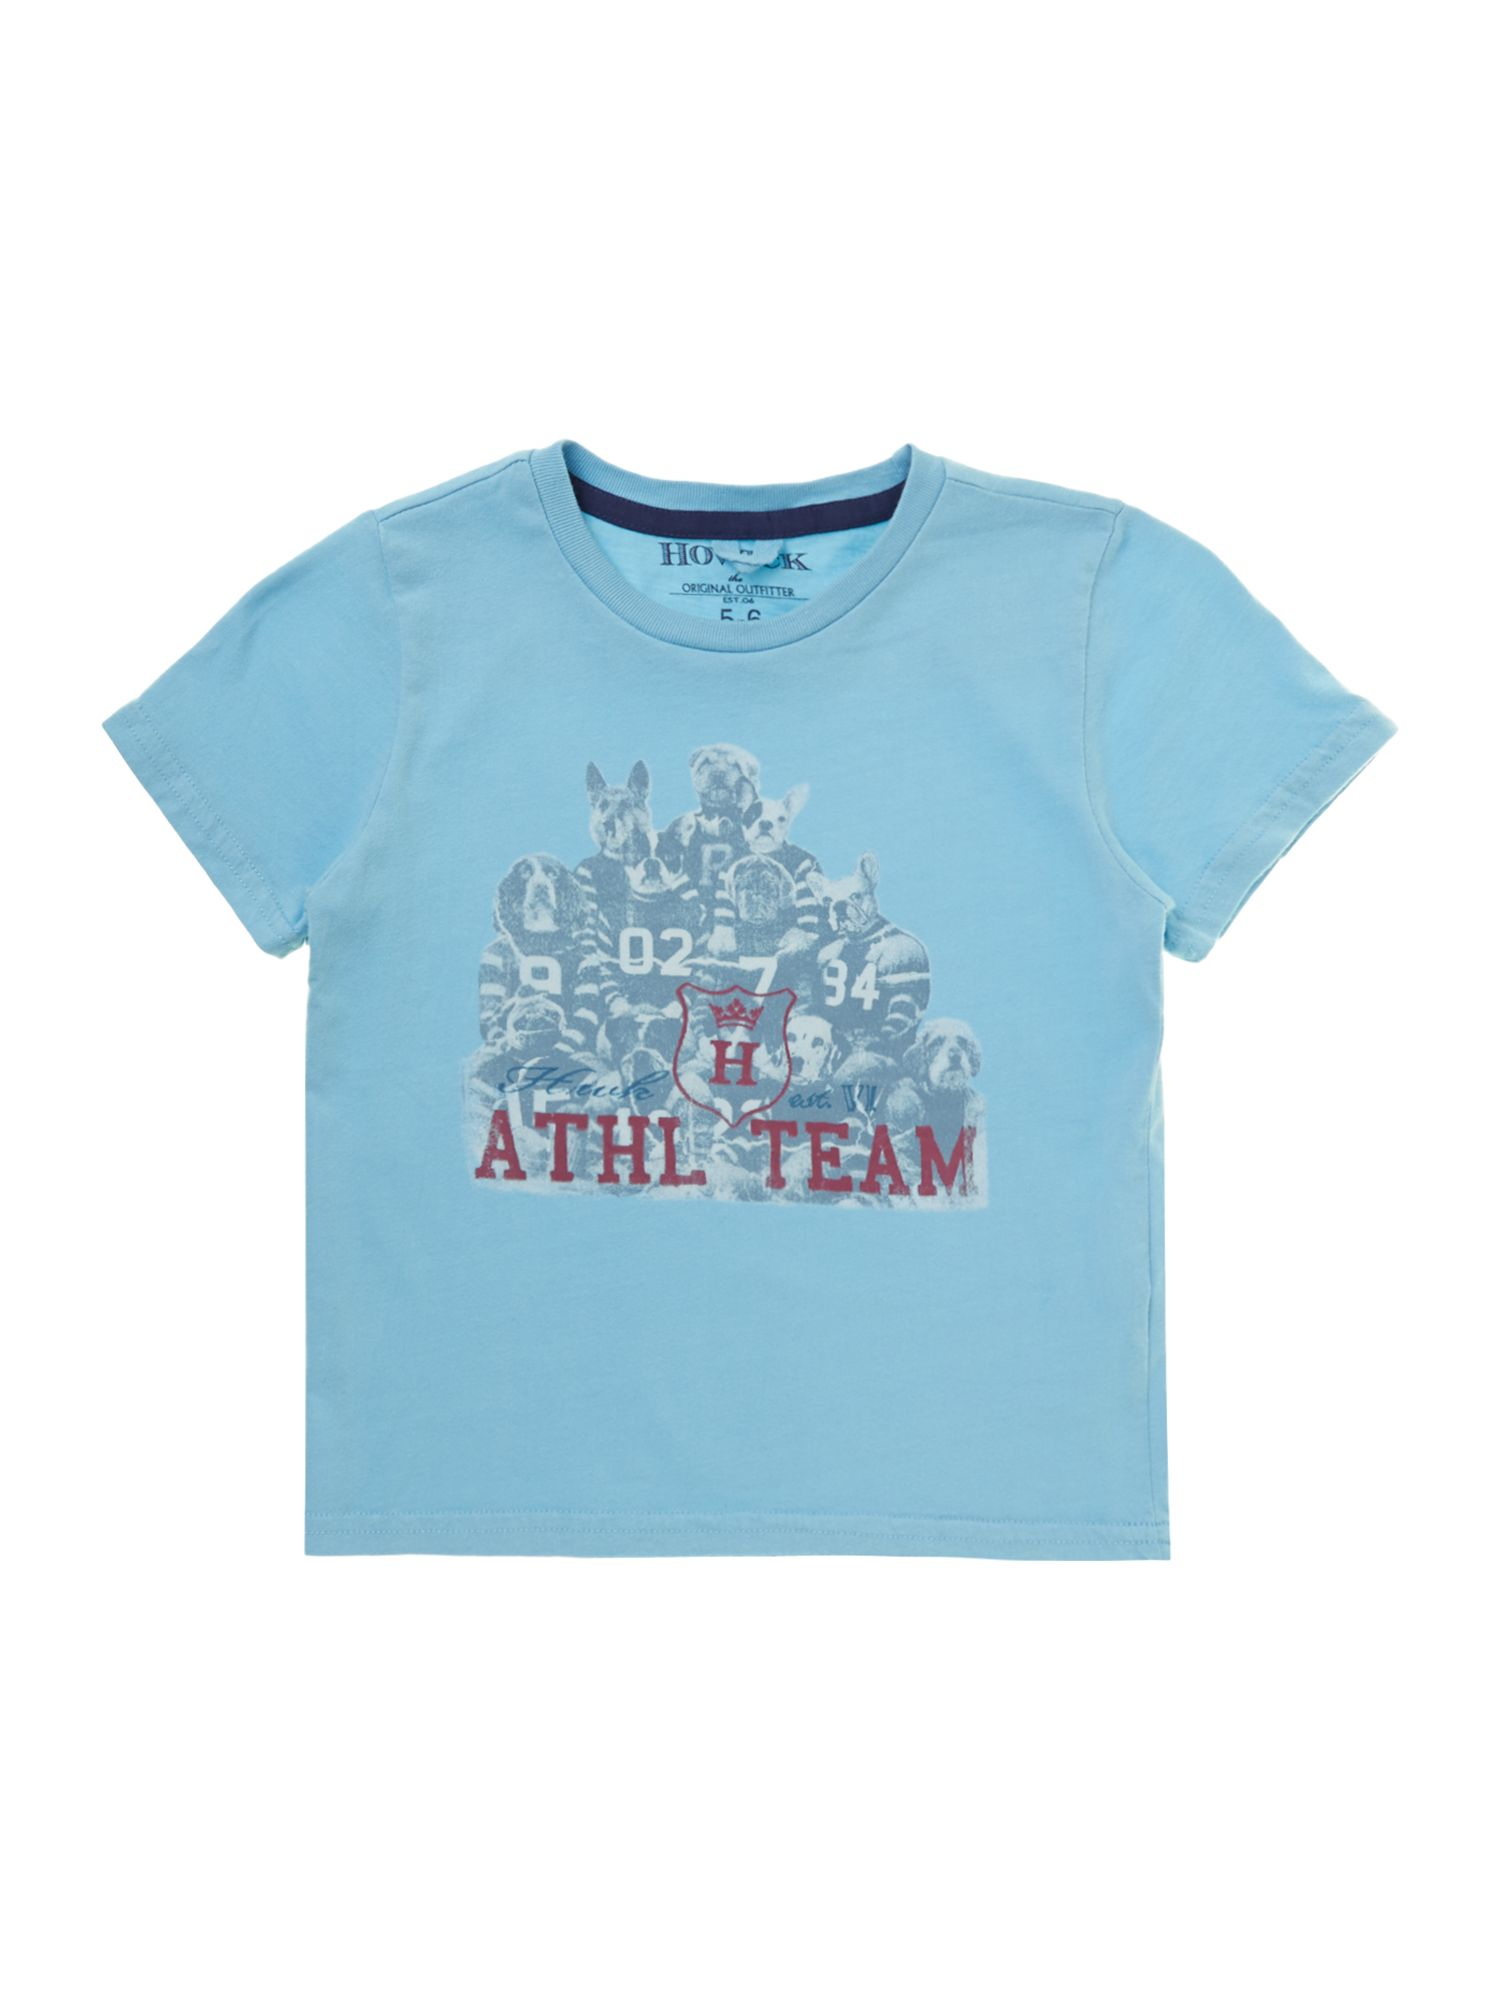 Boys athletic dogs graphic t-shirt